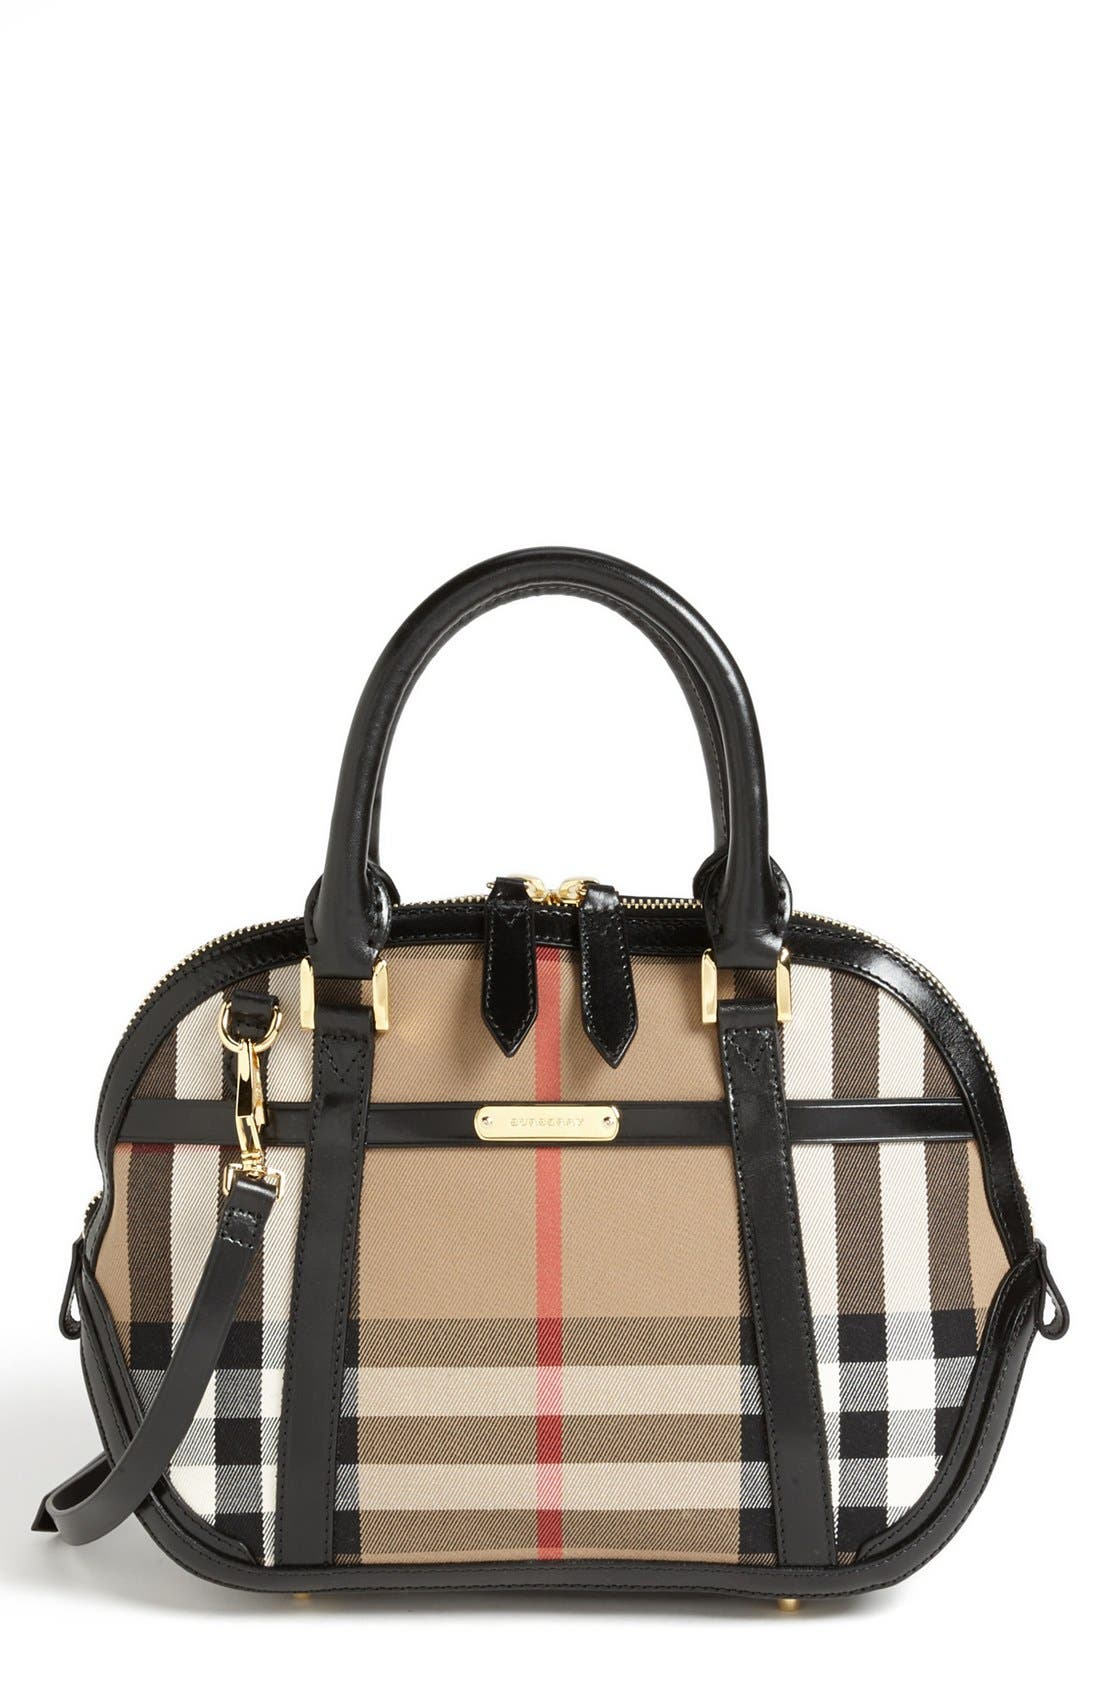 Alternate Image 1 Selected - Burberry 'House Check' Crossbody Satchel